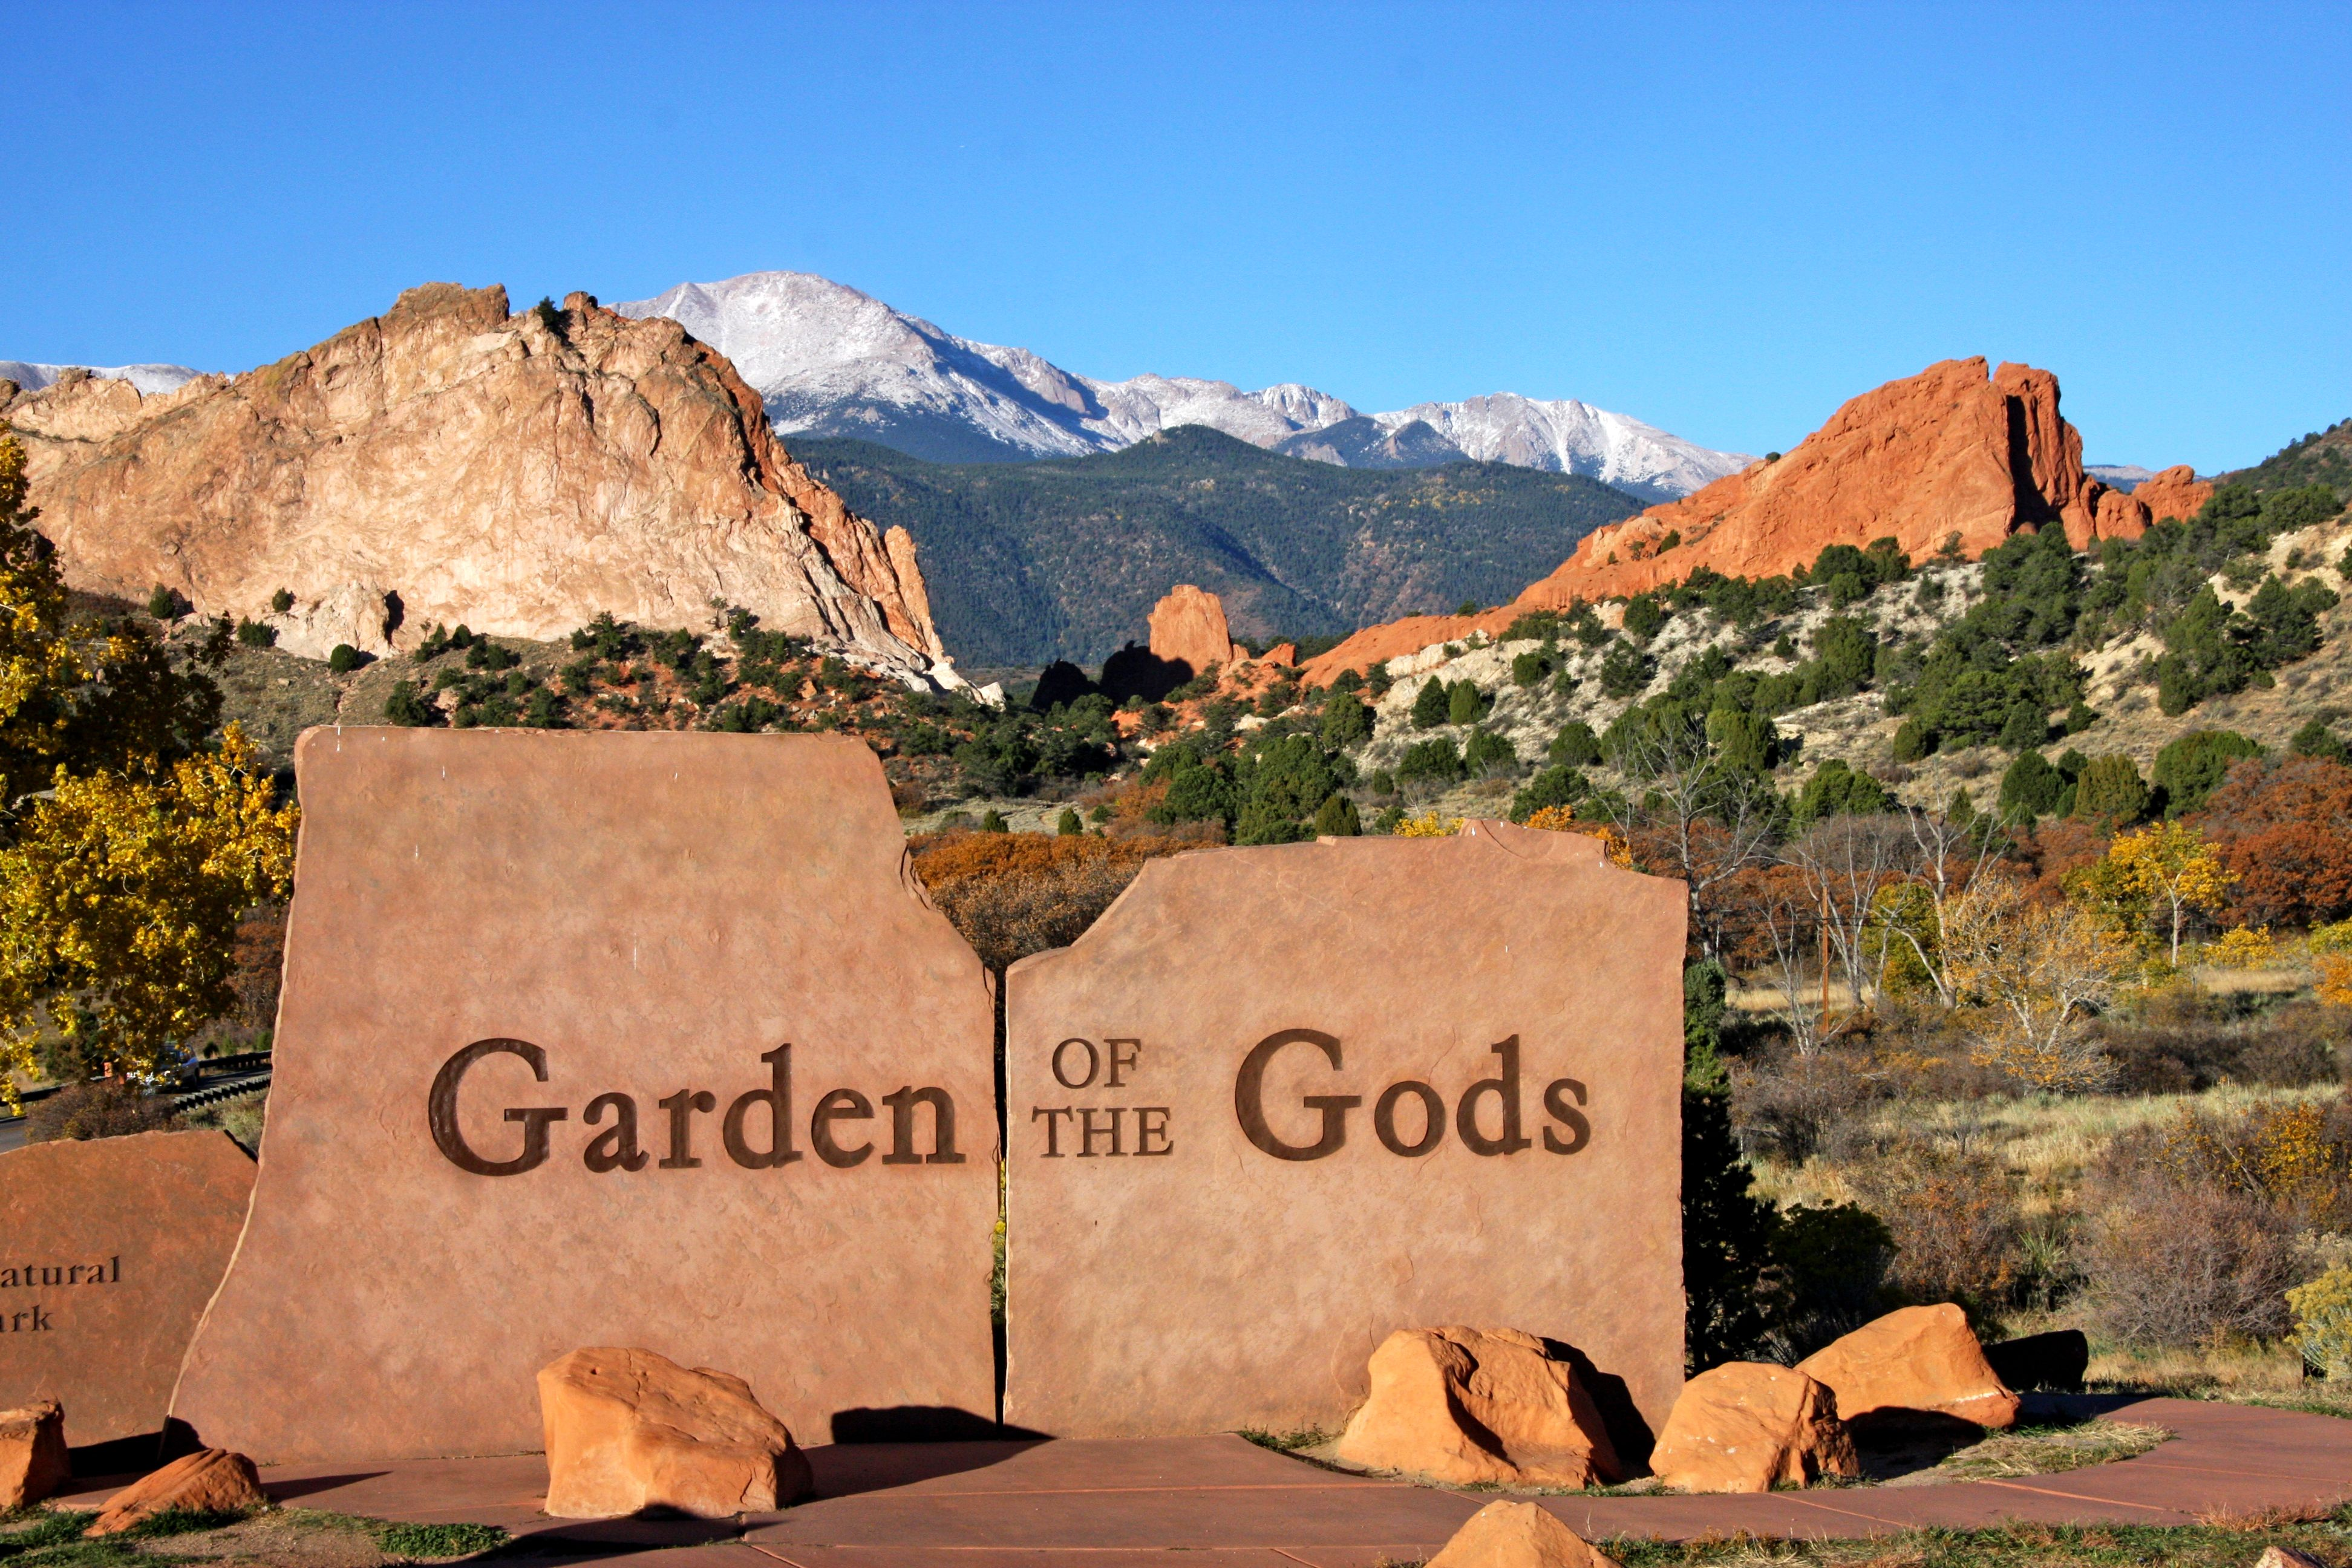 Garden Of The Gods Colorado Springs Co >> Take An Insta Worthy Pic In Front Of The Garden Of The Gods